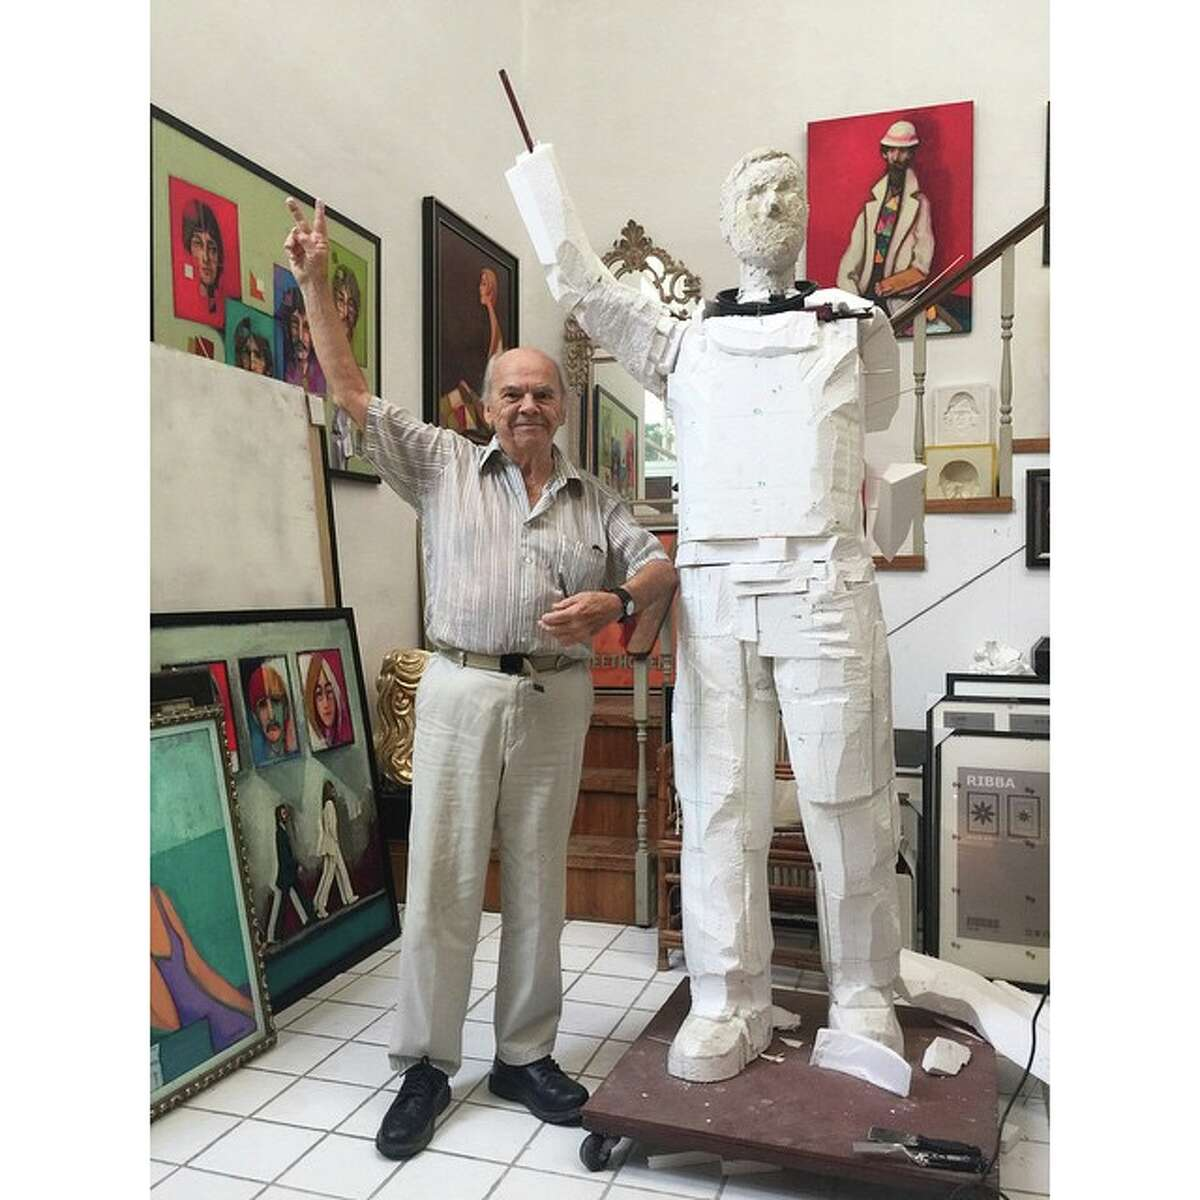 """Houston production company The Storyhive recently leaked details on an upcoming documentary about artist and sculptor David Adickes, the man behind many of the large-scale public art pieces dotting the Bayou City area. The film, titled """"Monumental,"""" will chronicle the daily life of Adickes who at the age of 88 is still exercising his creative muscles. It's been in production for three years now, according to the producers."""